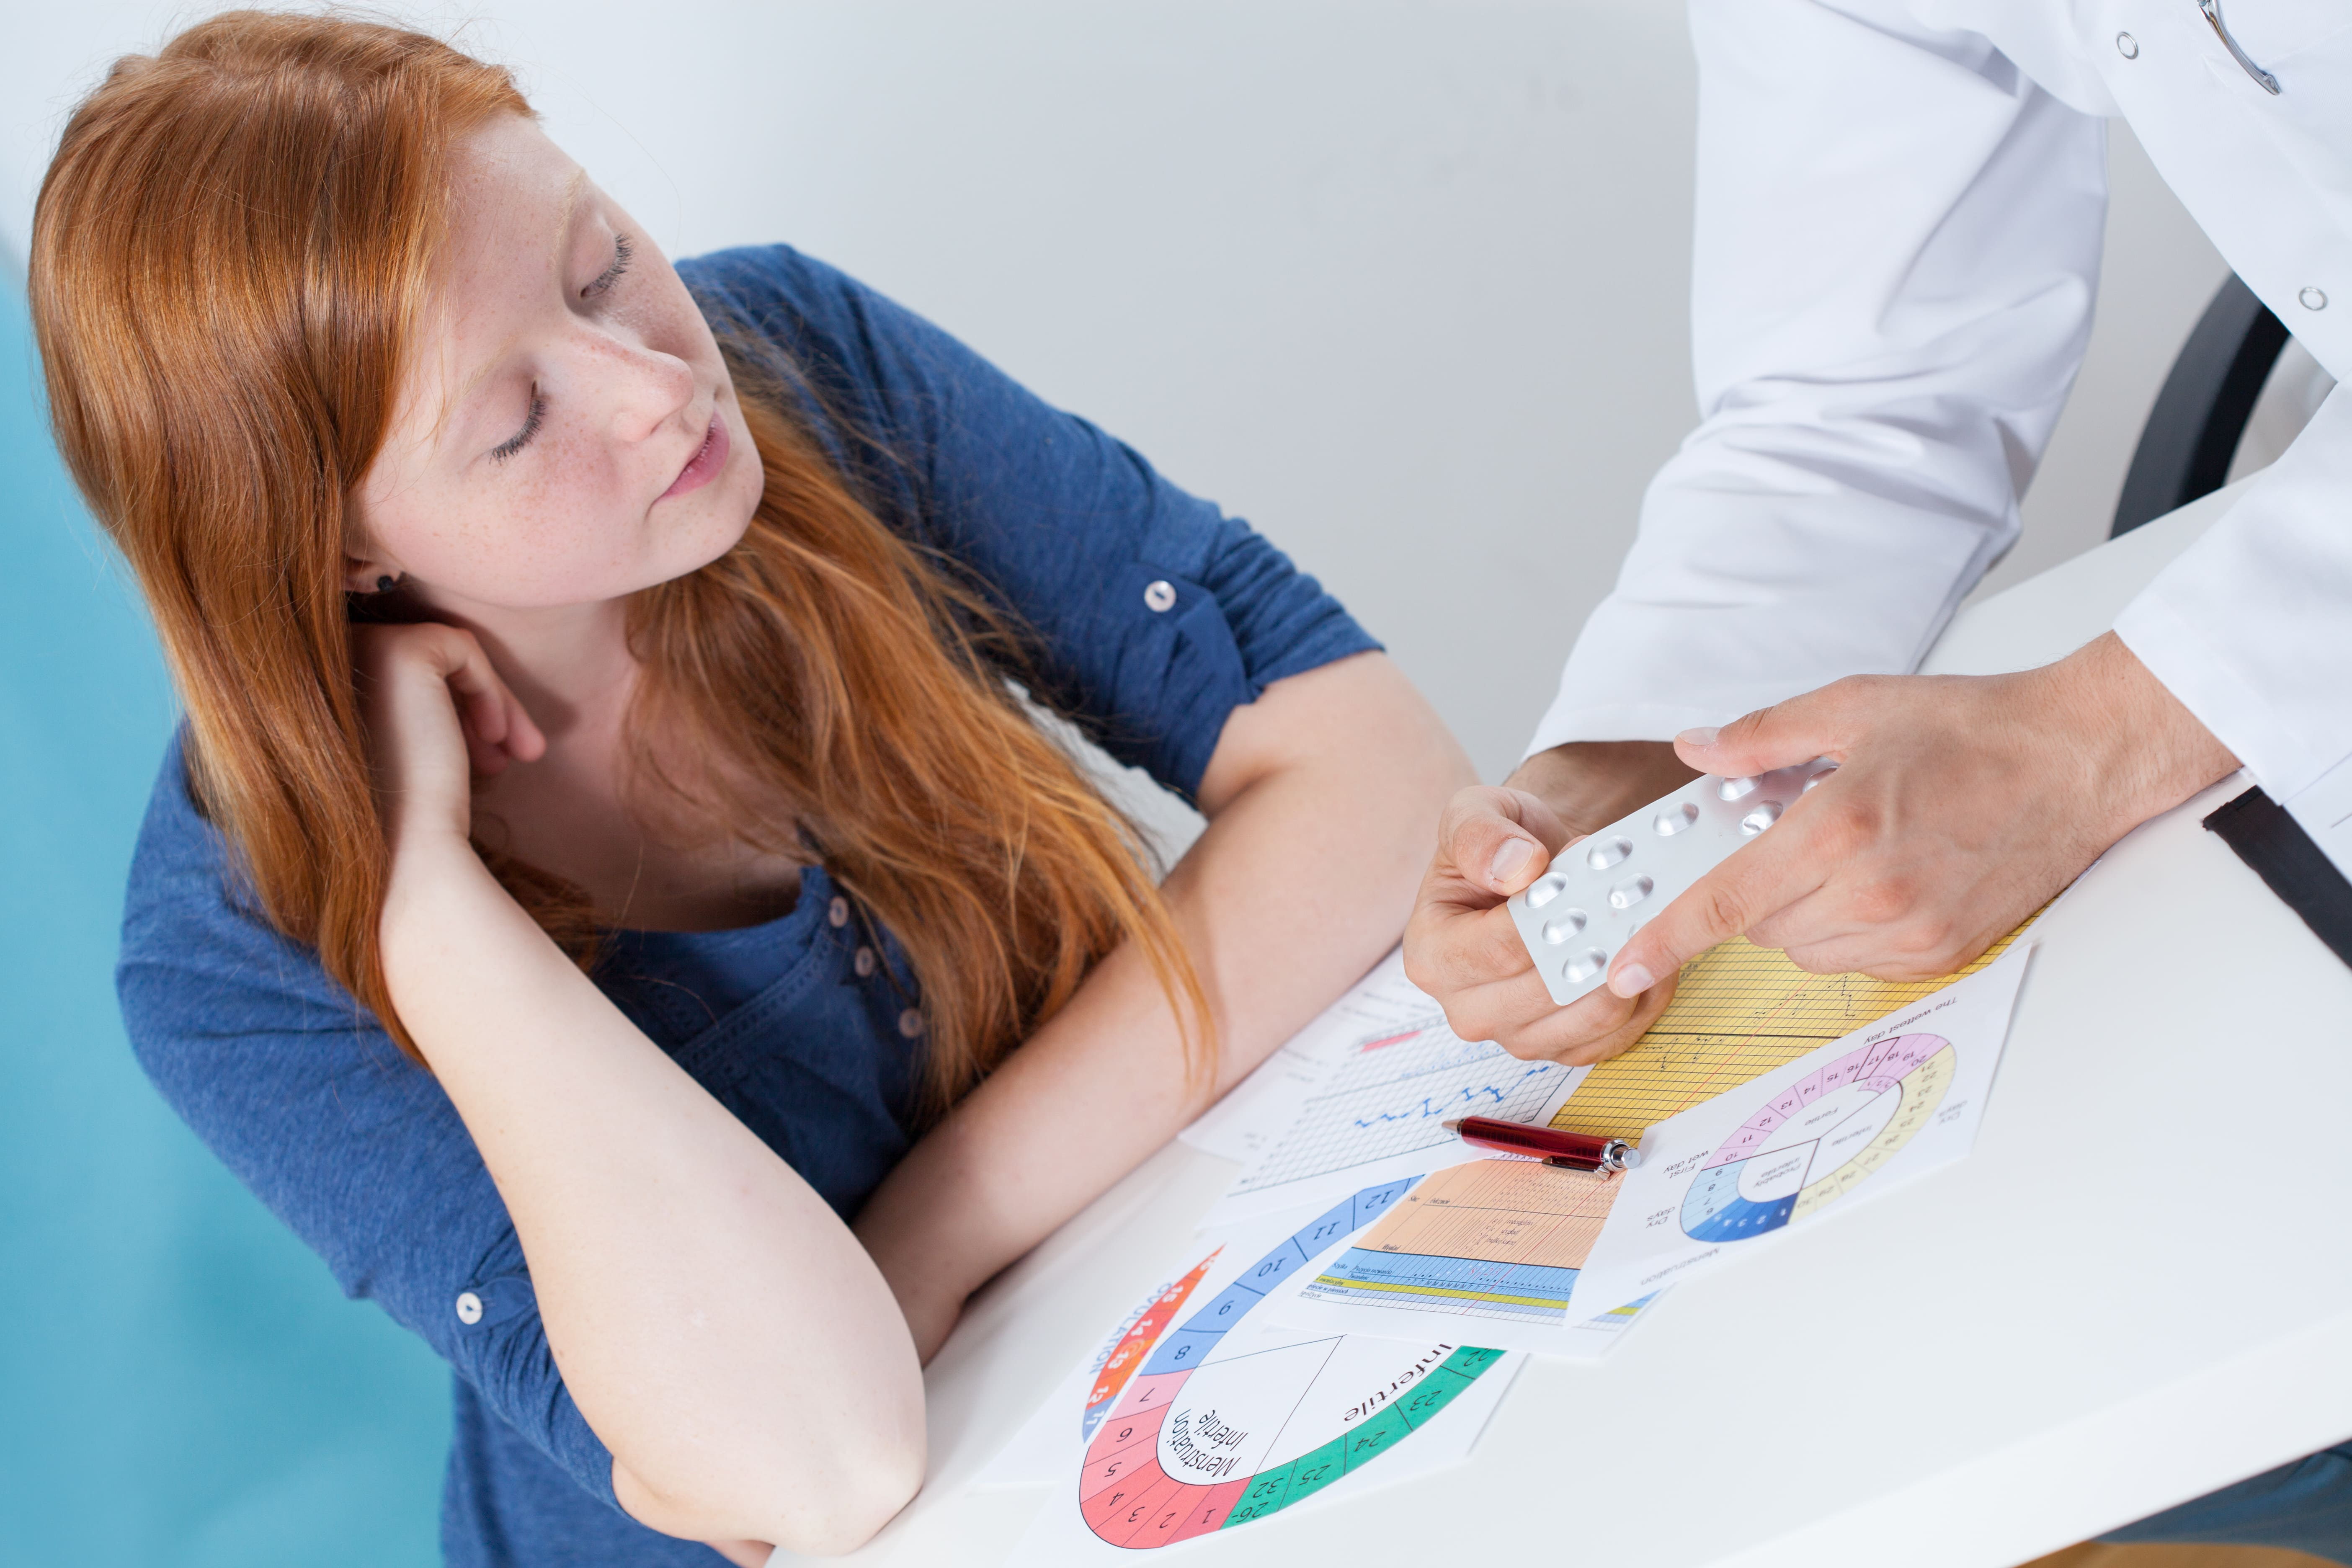 Part 2 Of The Contraception Series: Contraception After Baby And FAQs